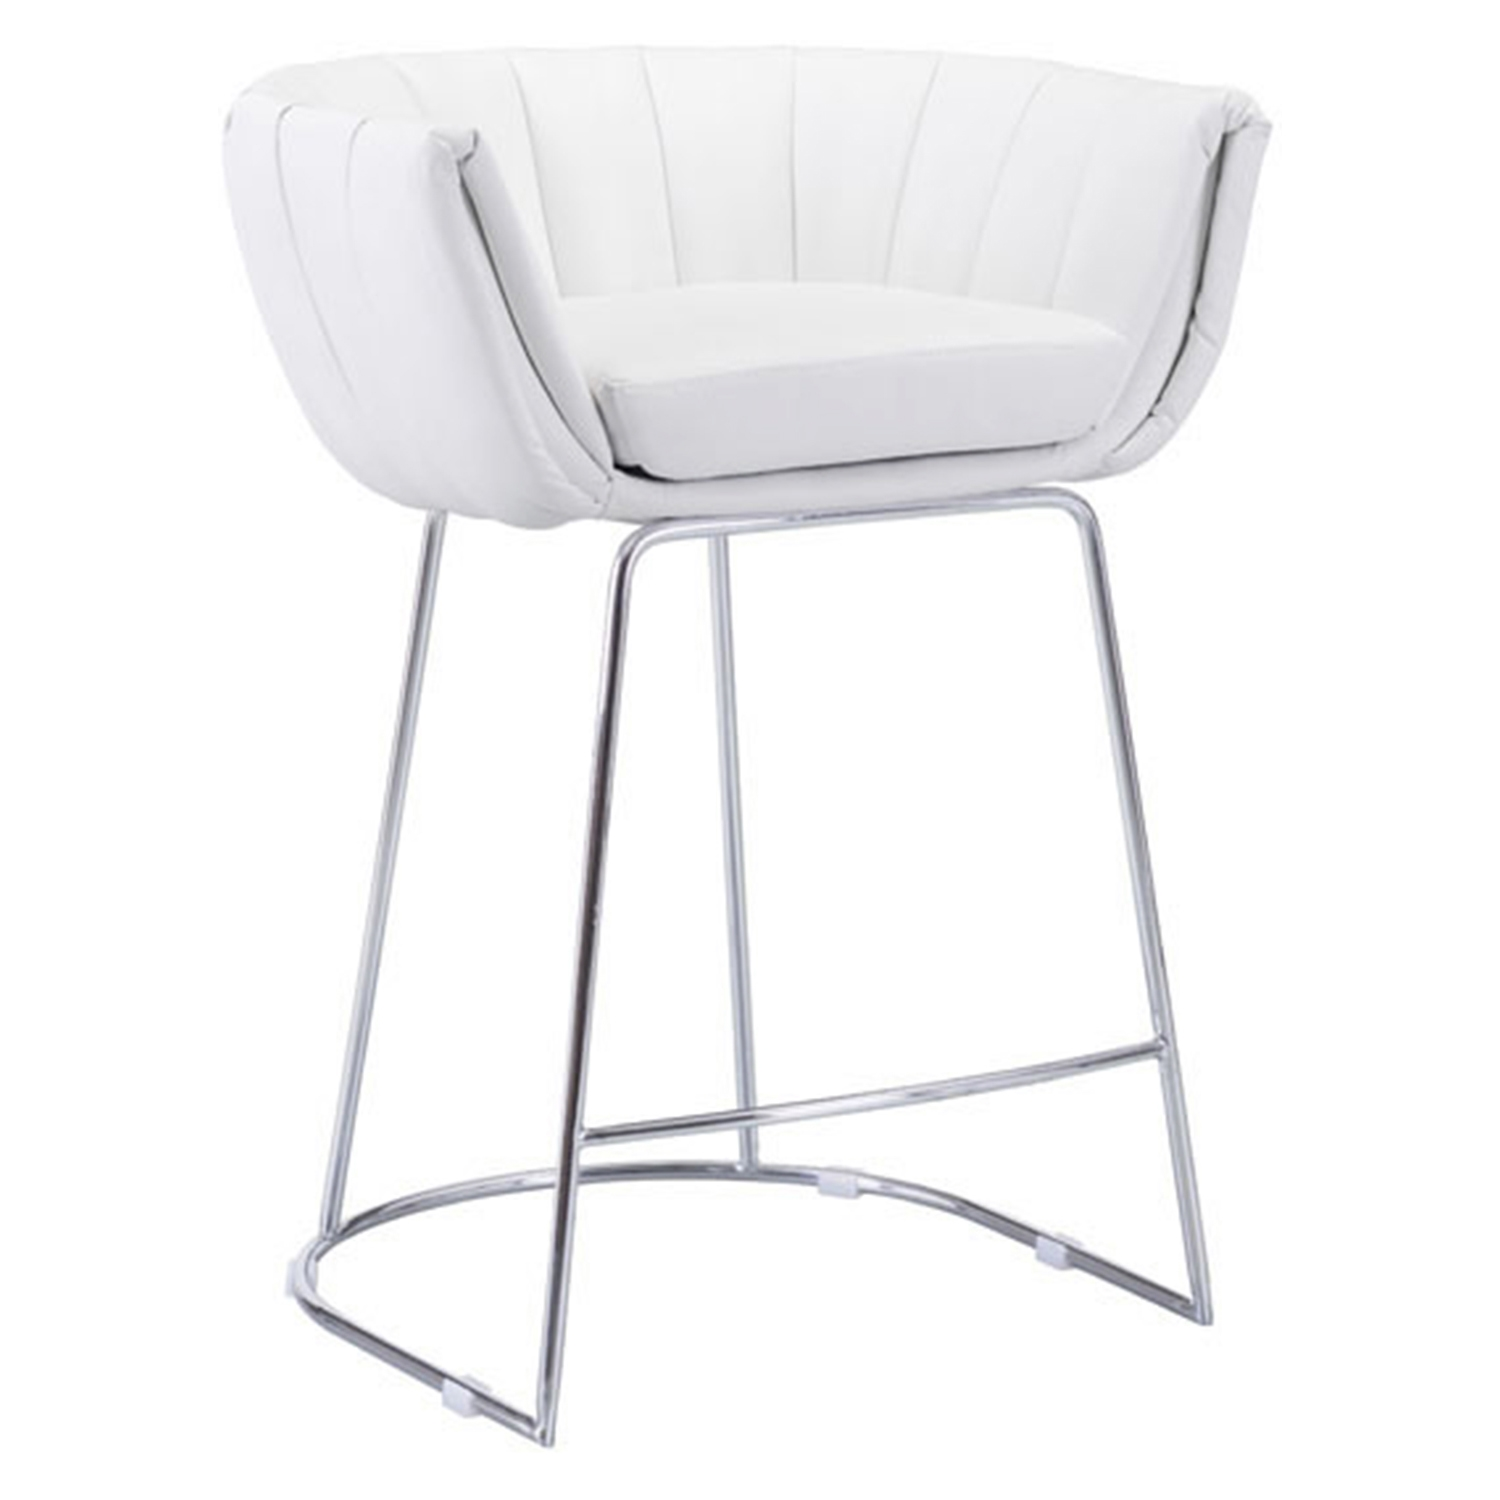 Latte Backless Counter Chair - White